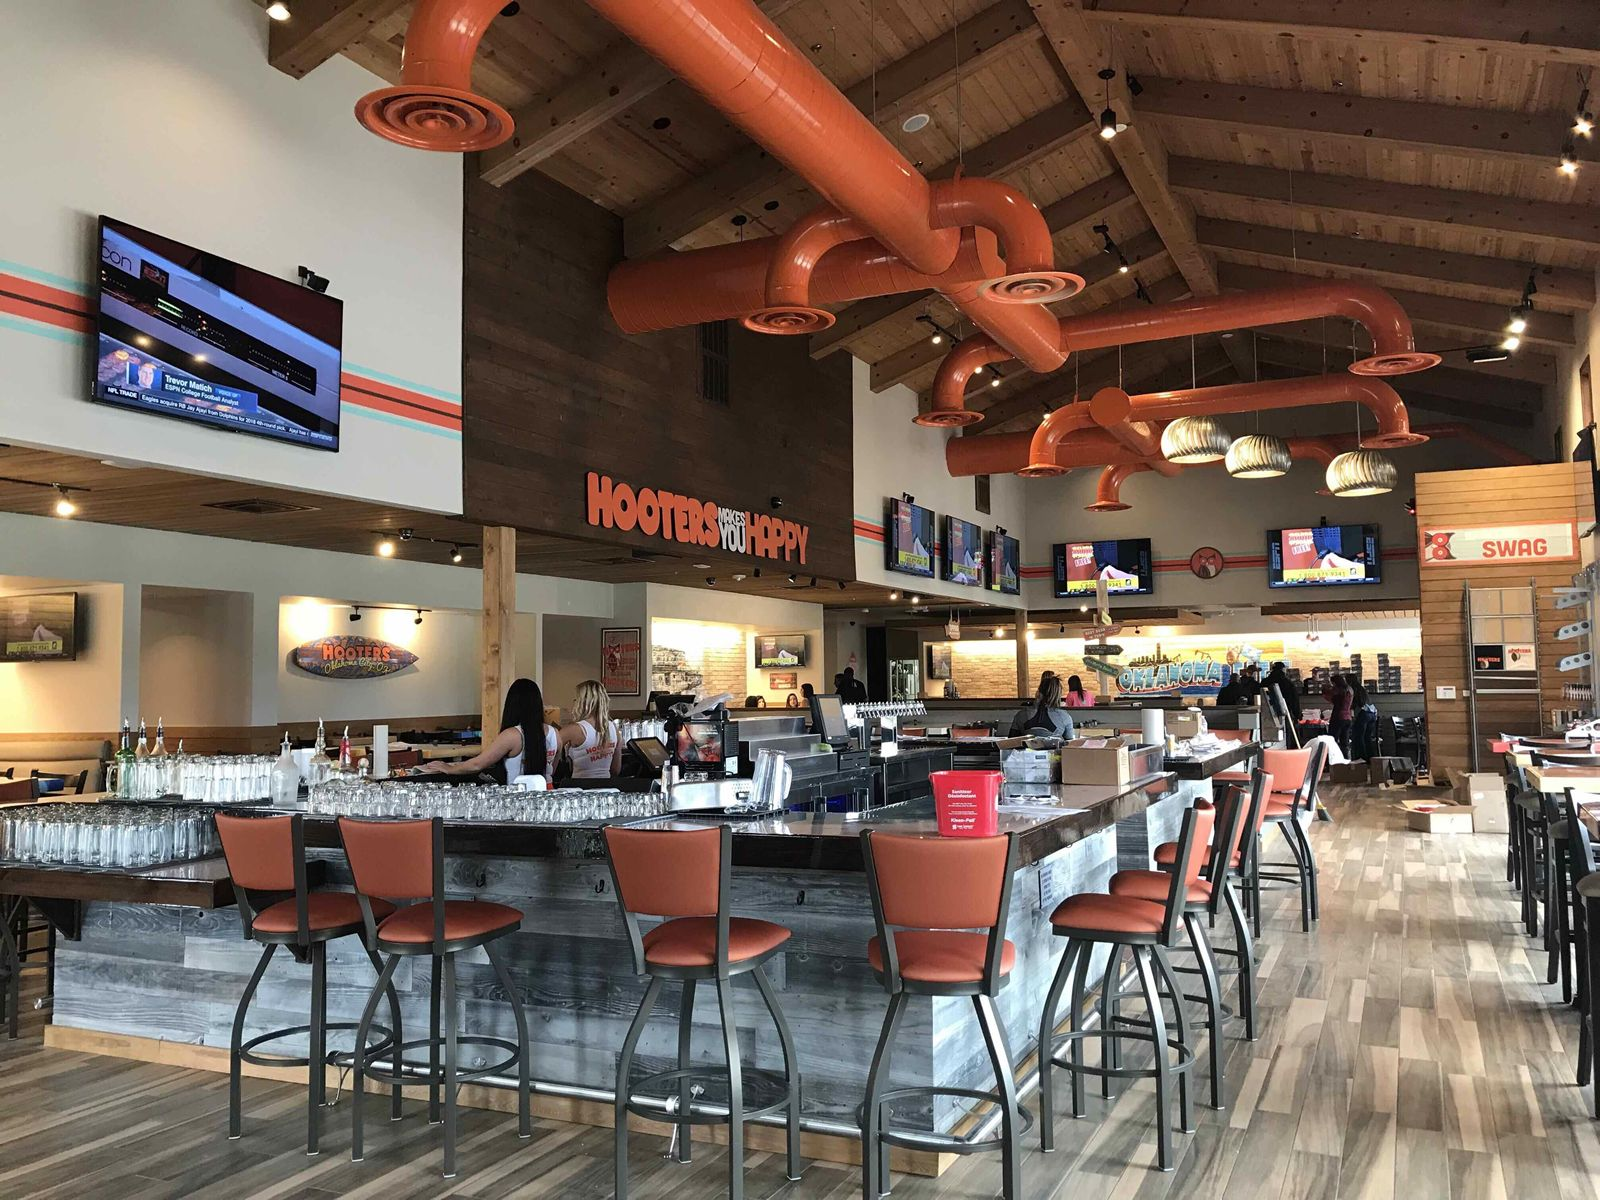 Hooters Spreads Wings with Third Oklahoma City Location